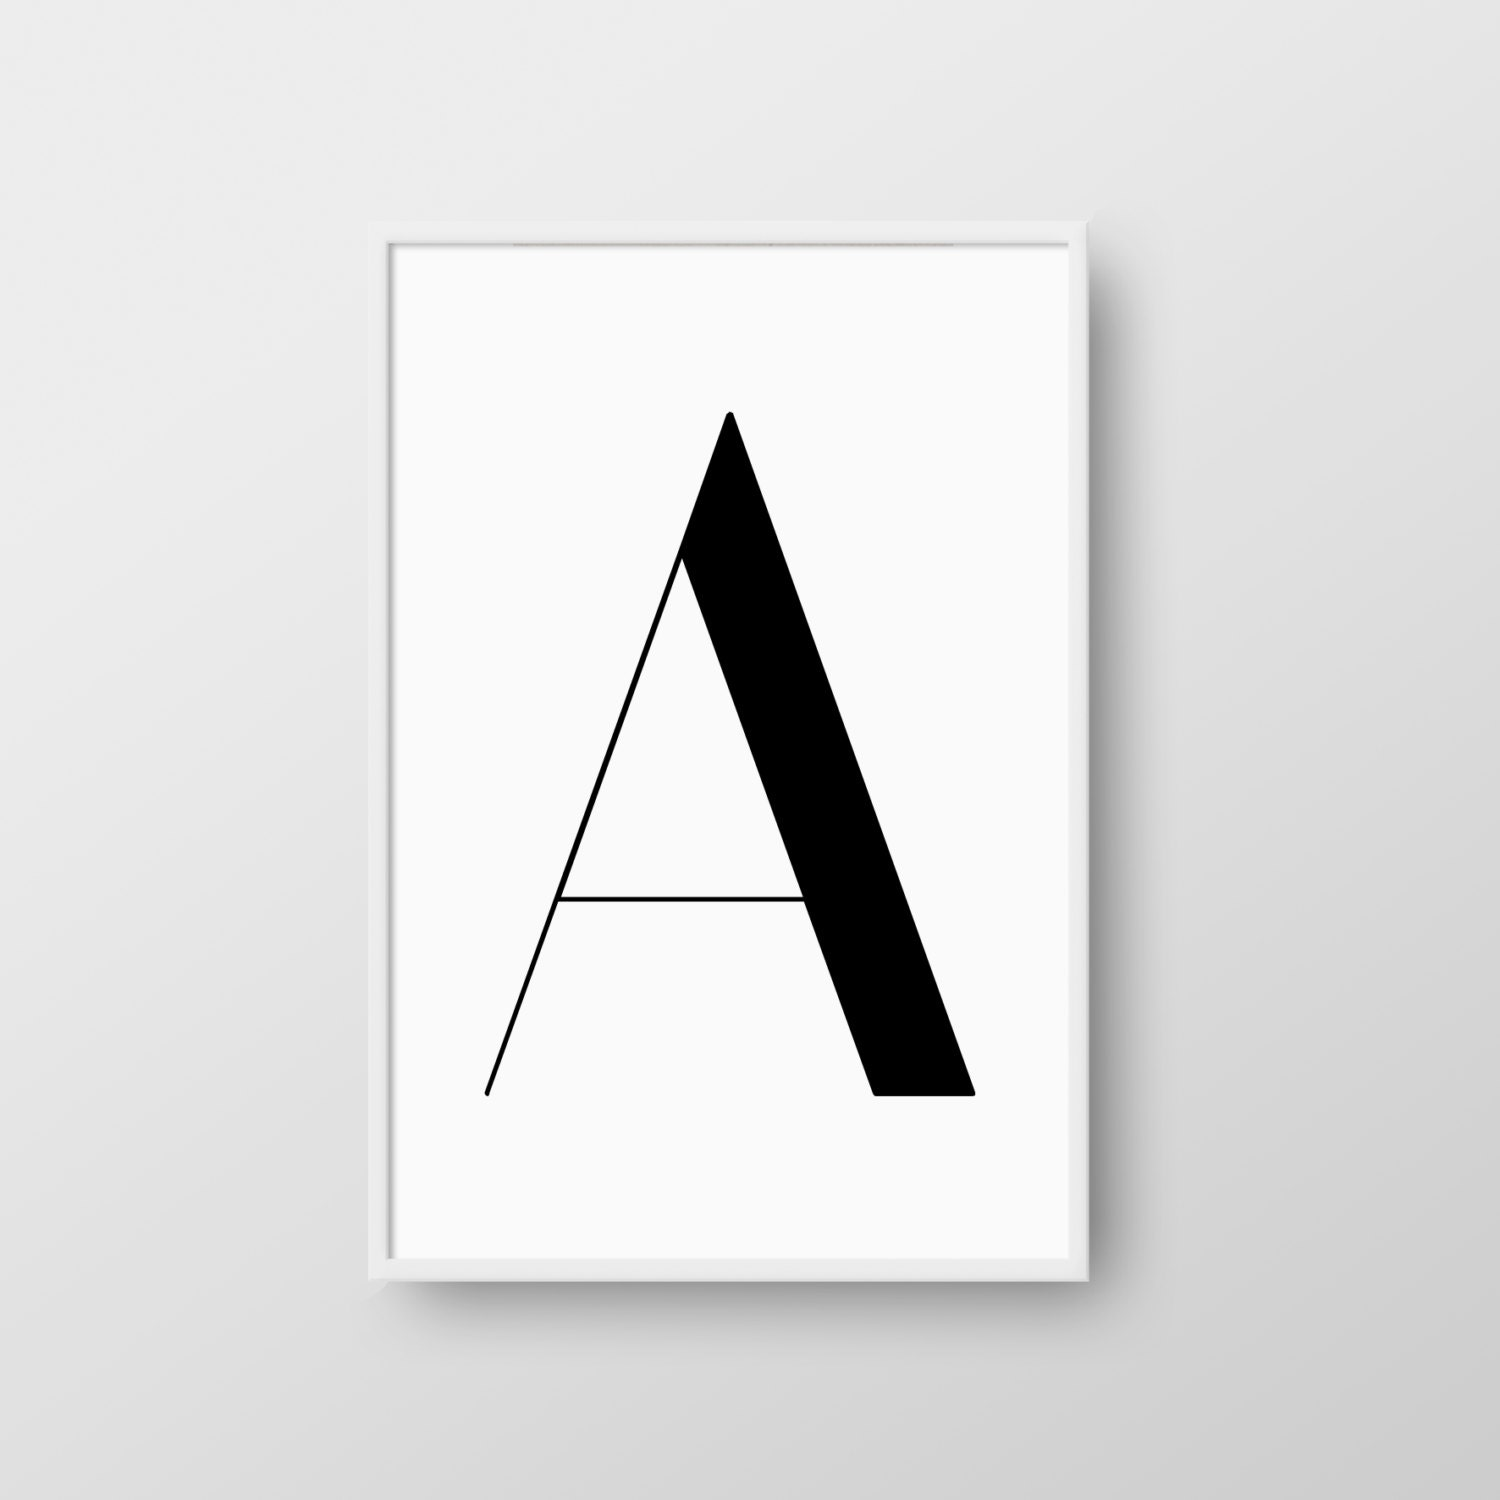 photo regarding Printable Poster Letters titled Letter A Printable Poster, Scandinavian Letter Print, Scandinavian Poster, Letter A Print, Letter A Wall Decor, Electronic Print, Nordic Print